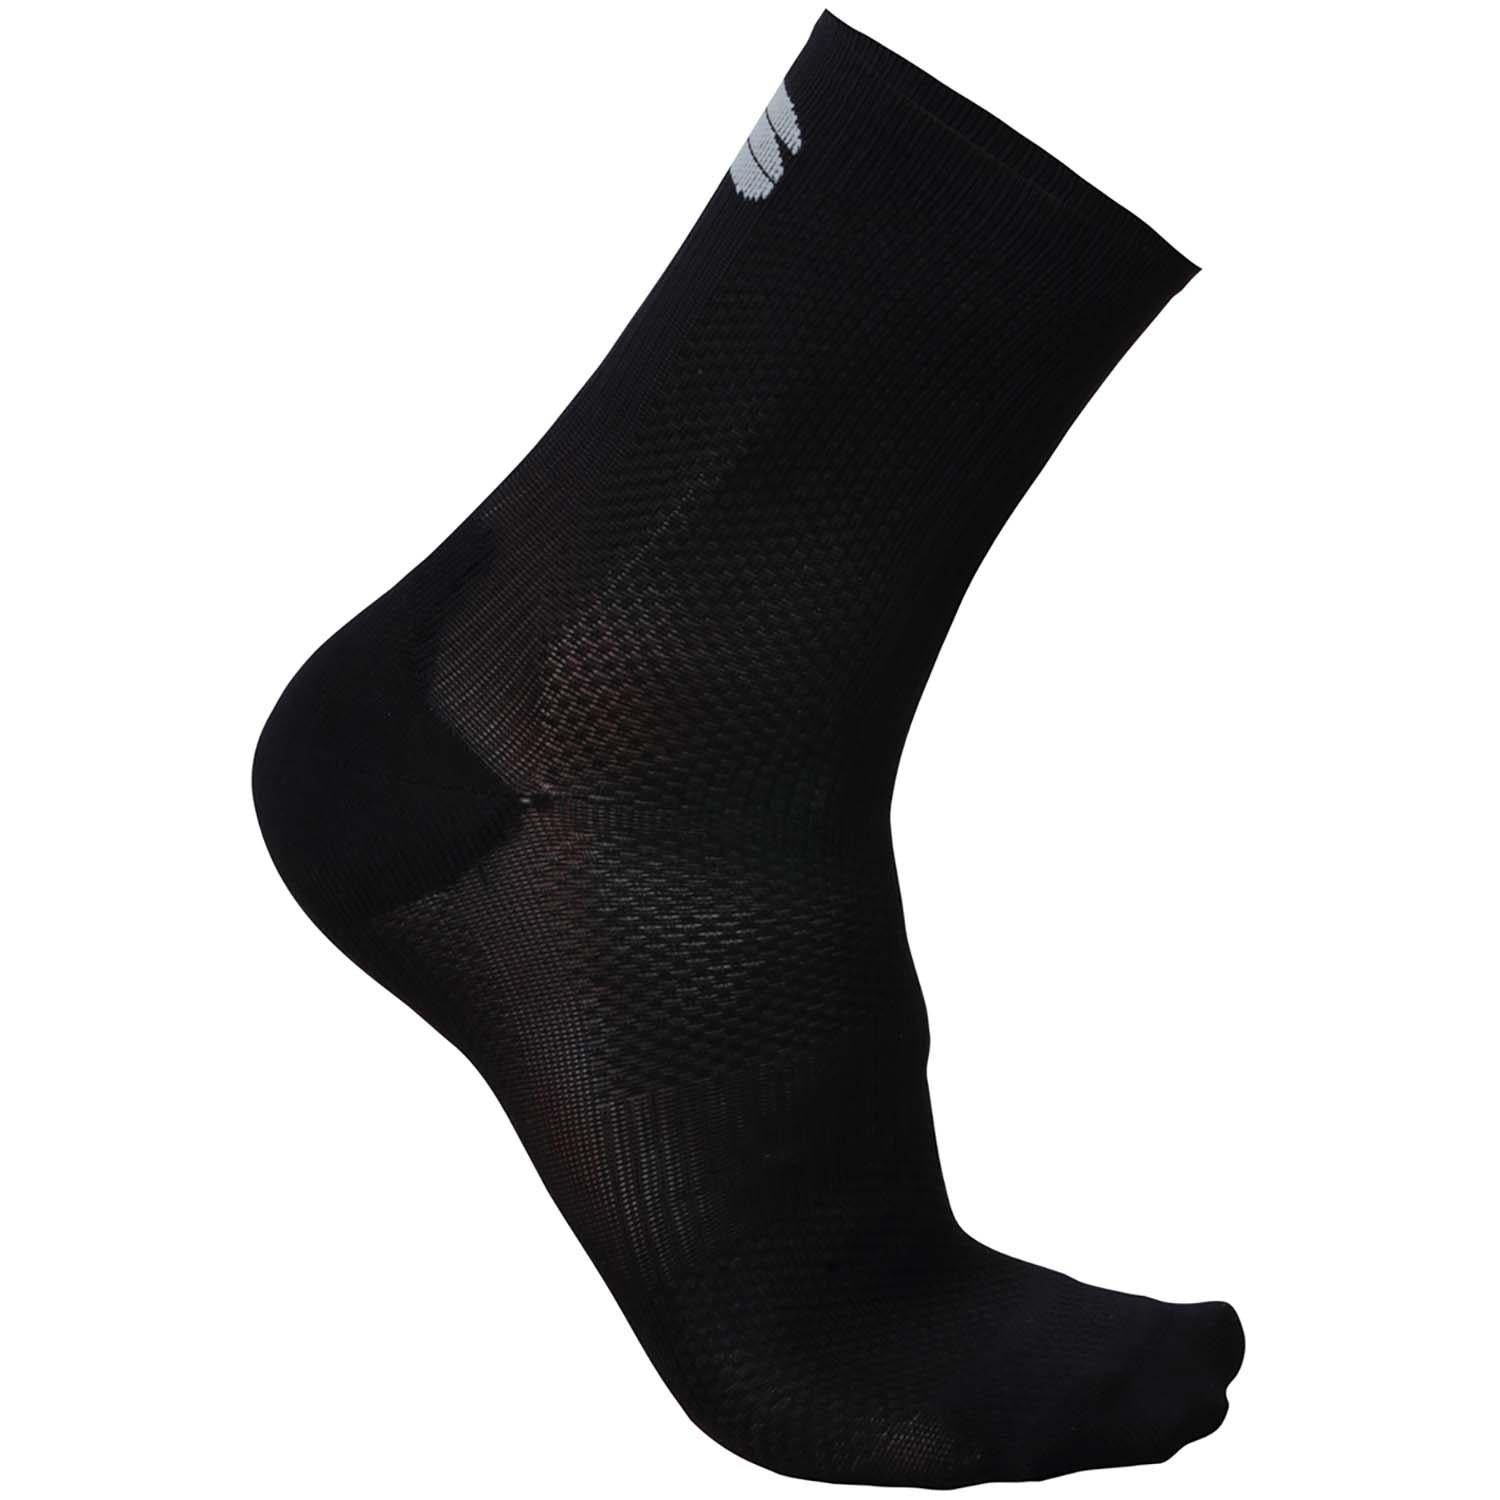 Sportful-Sportful BodyFit Pro 12 Socks-Black-S-SF0205600212-saddleback-elite-performance-cycling